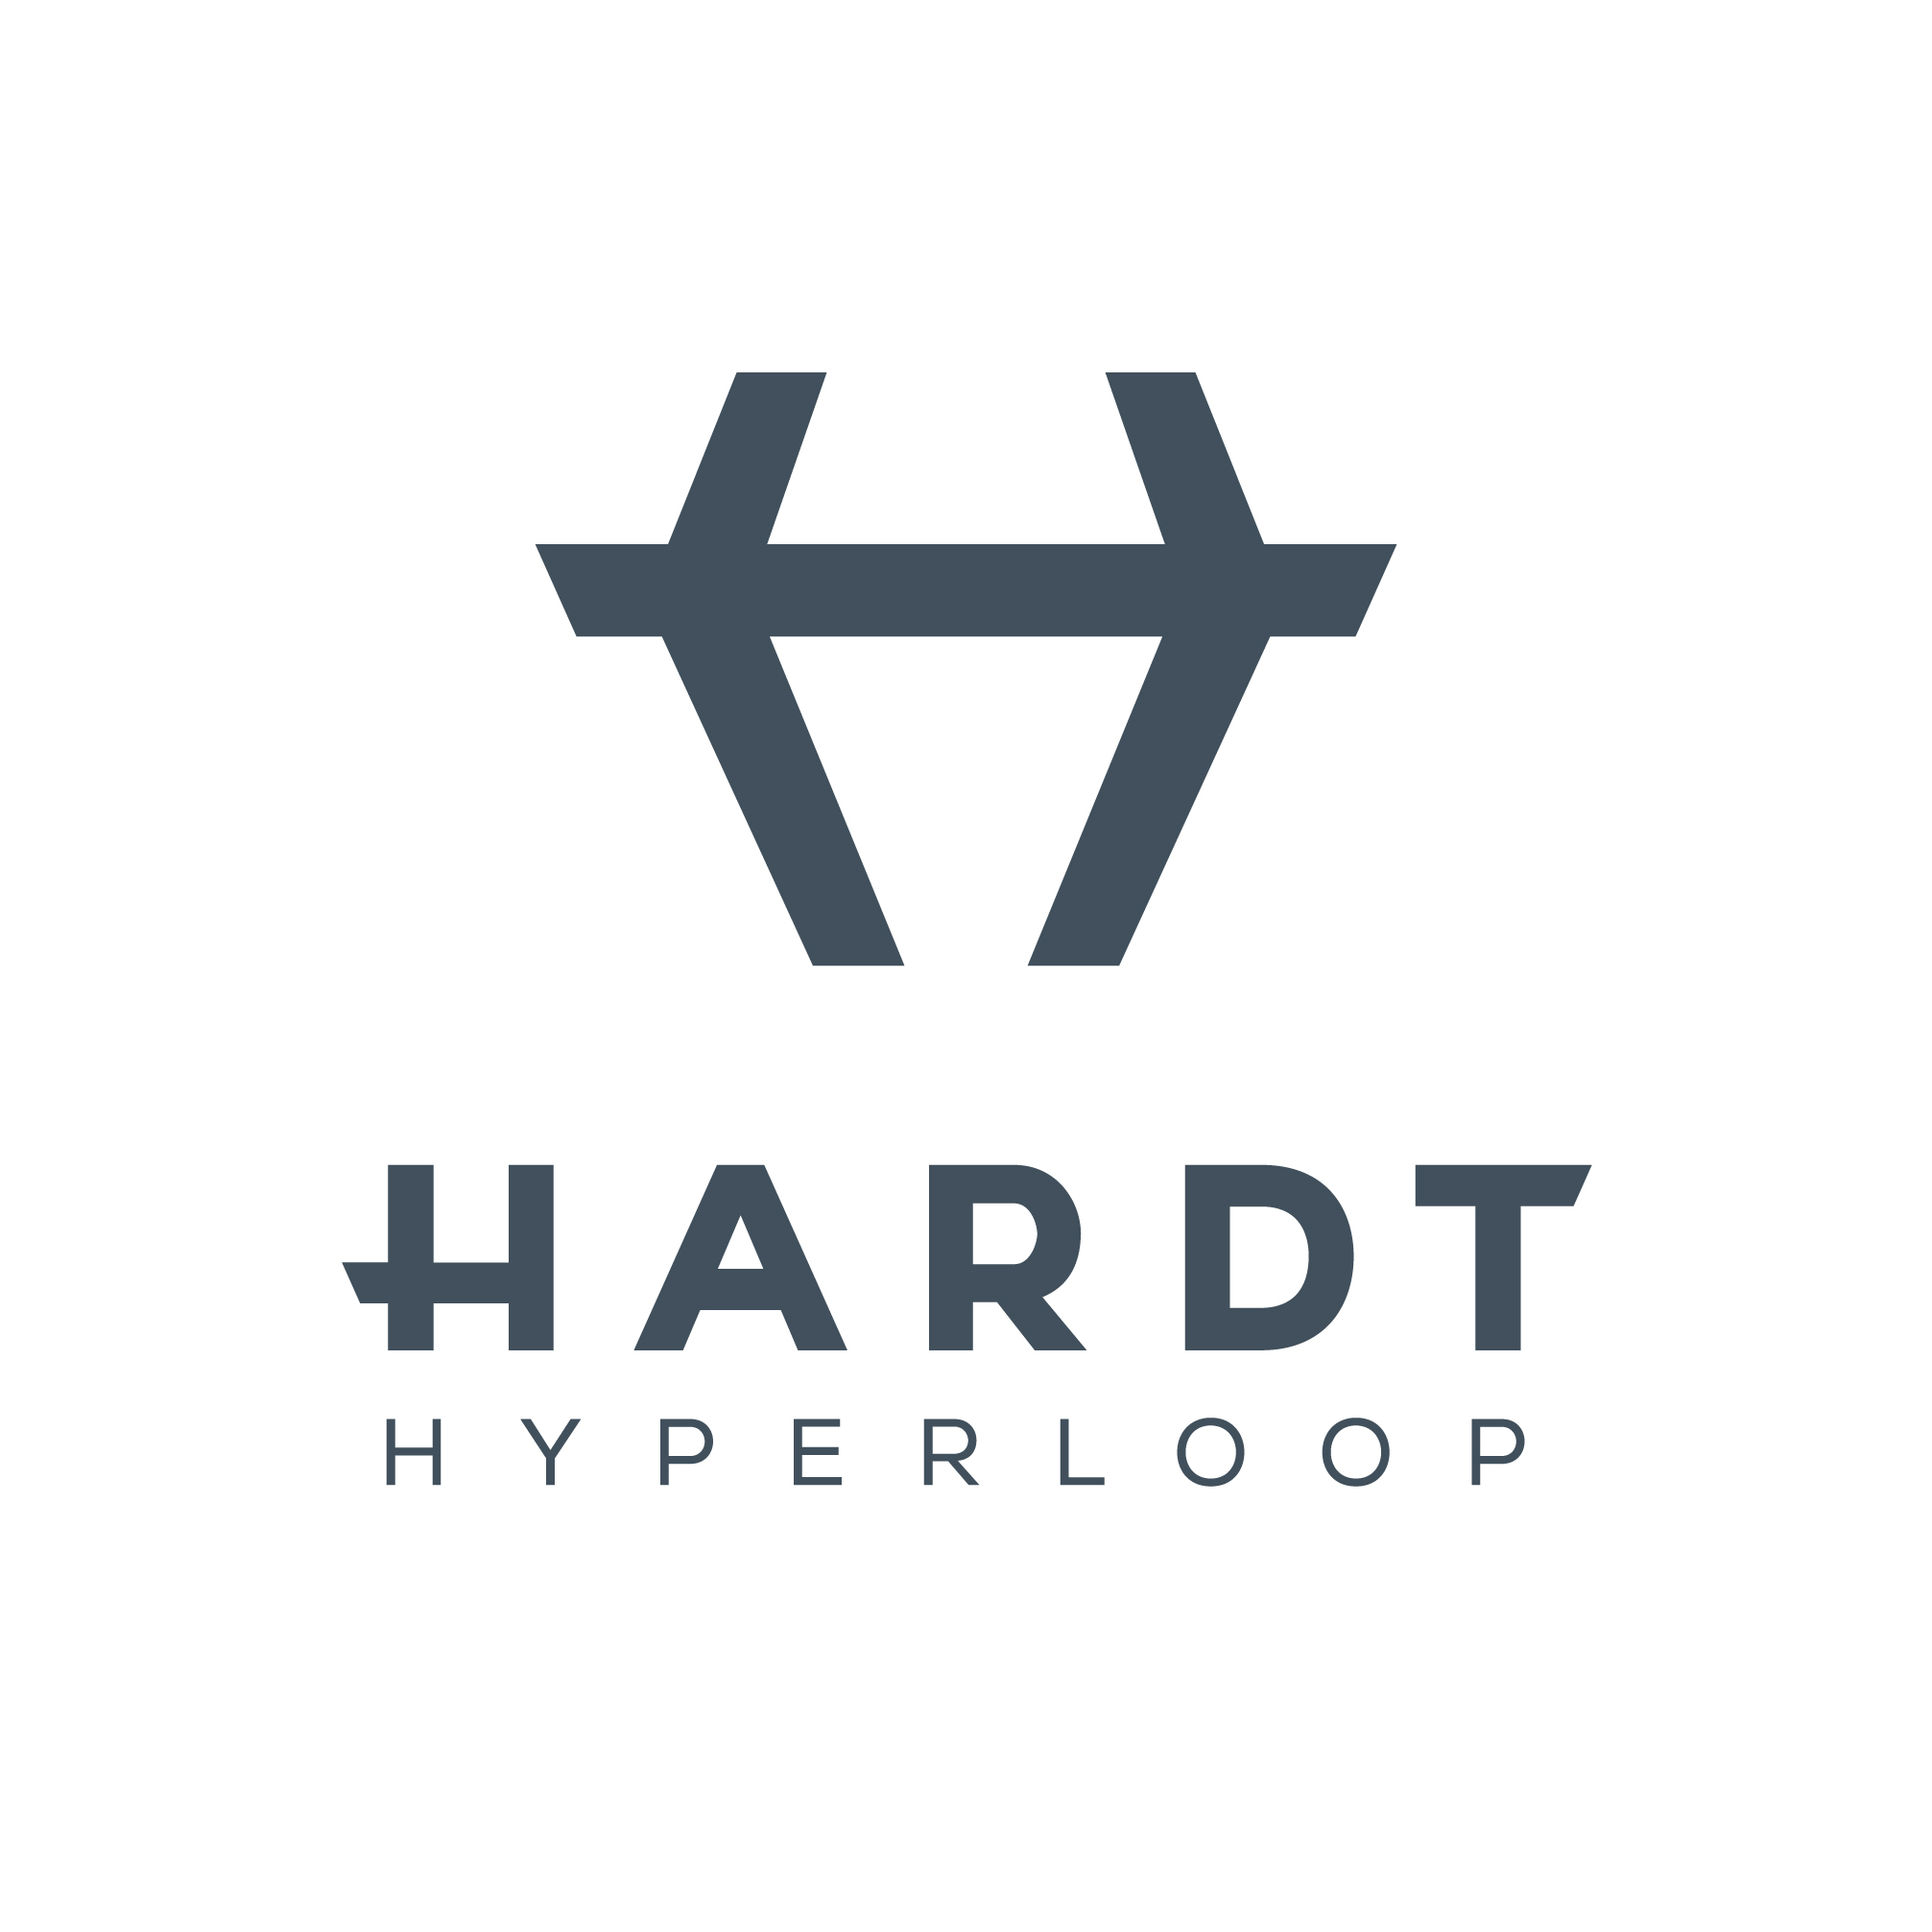 hardt_hyperloop_square_gray-01.jpg